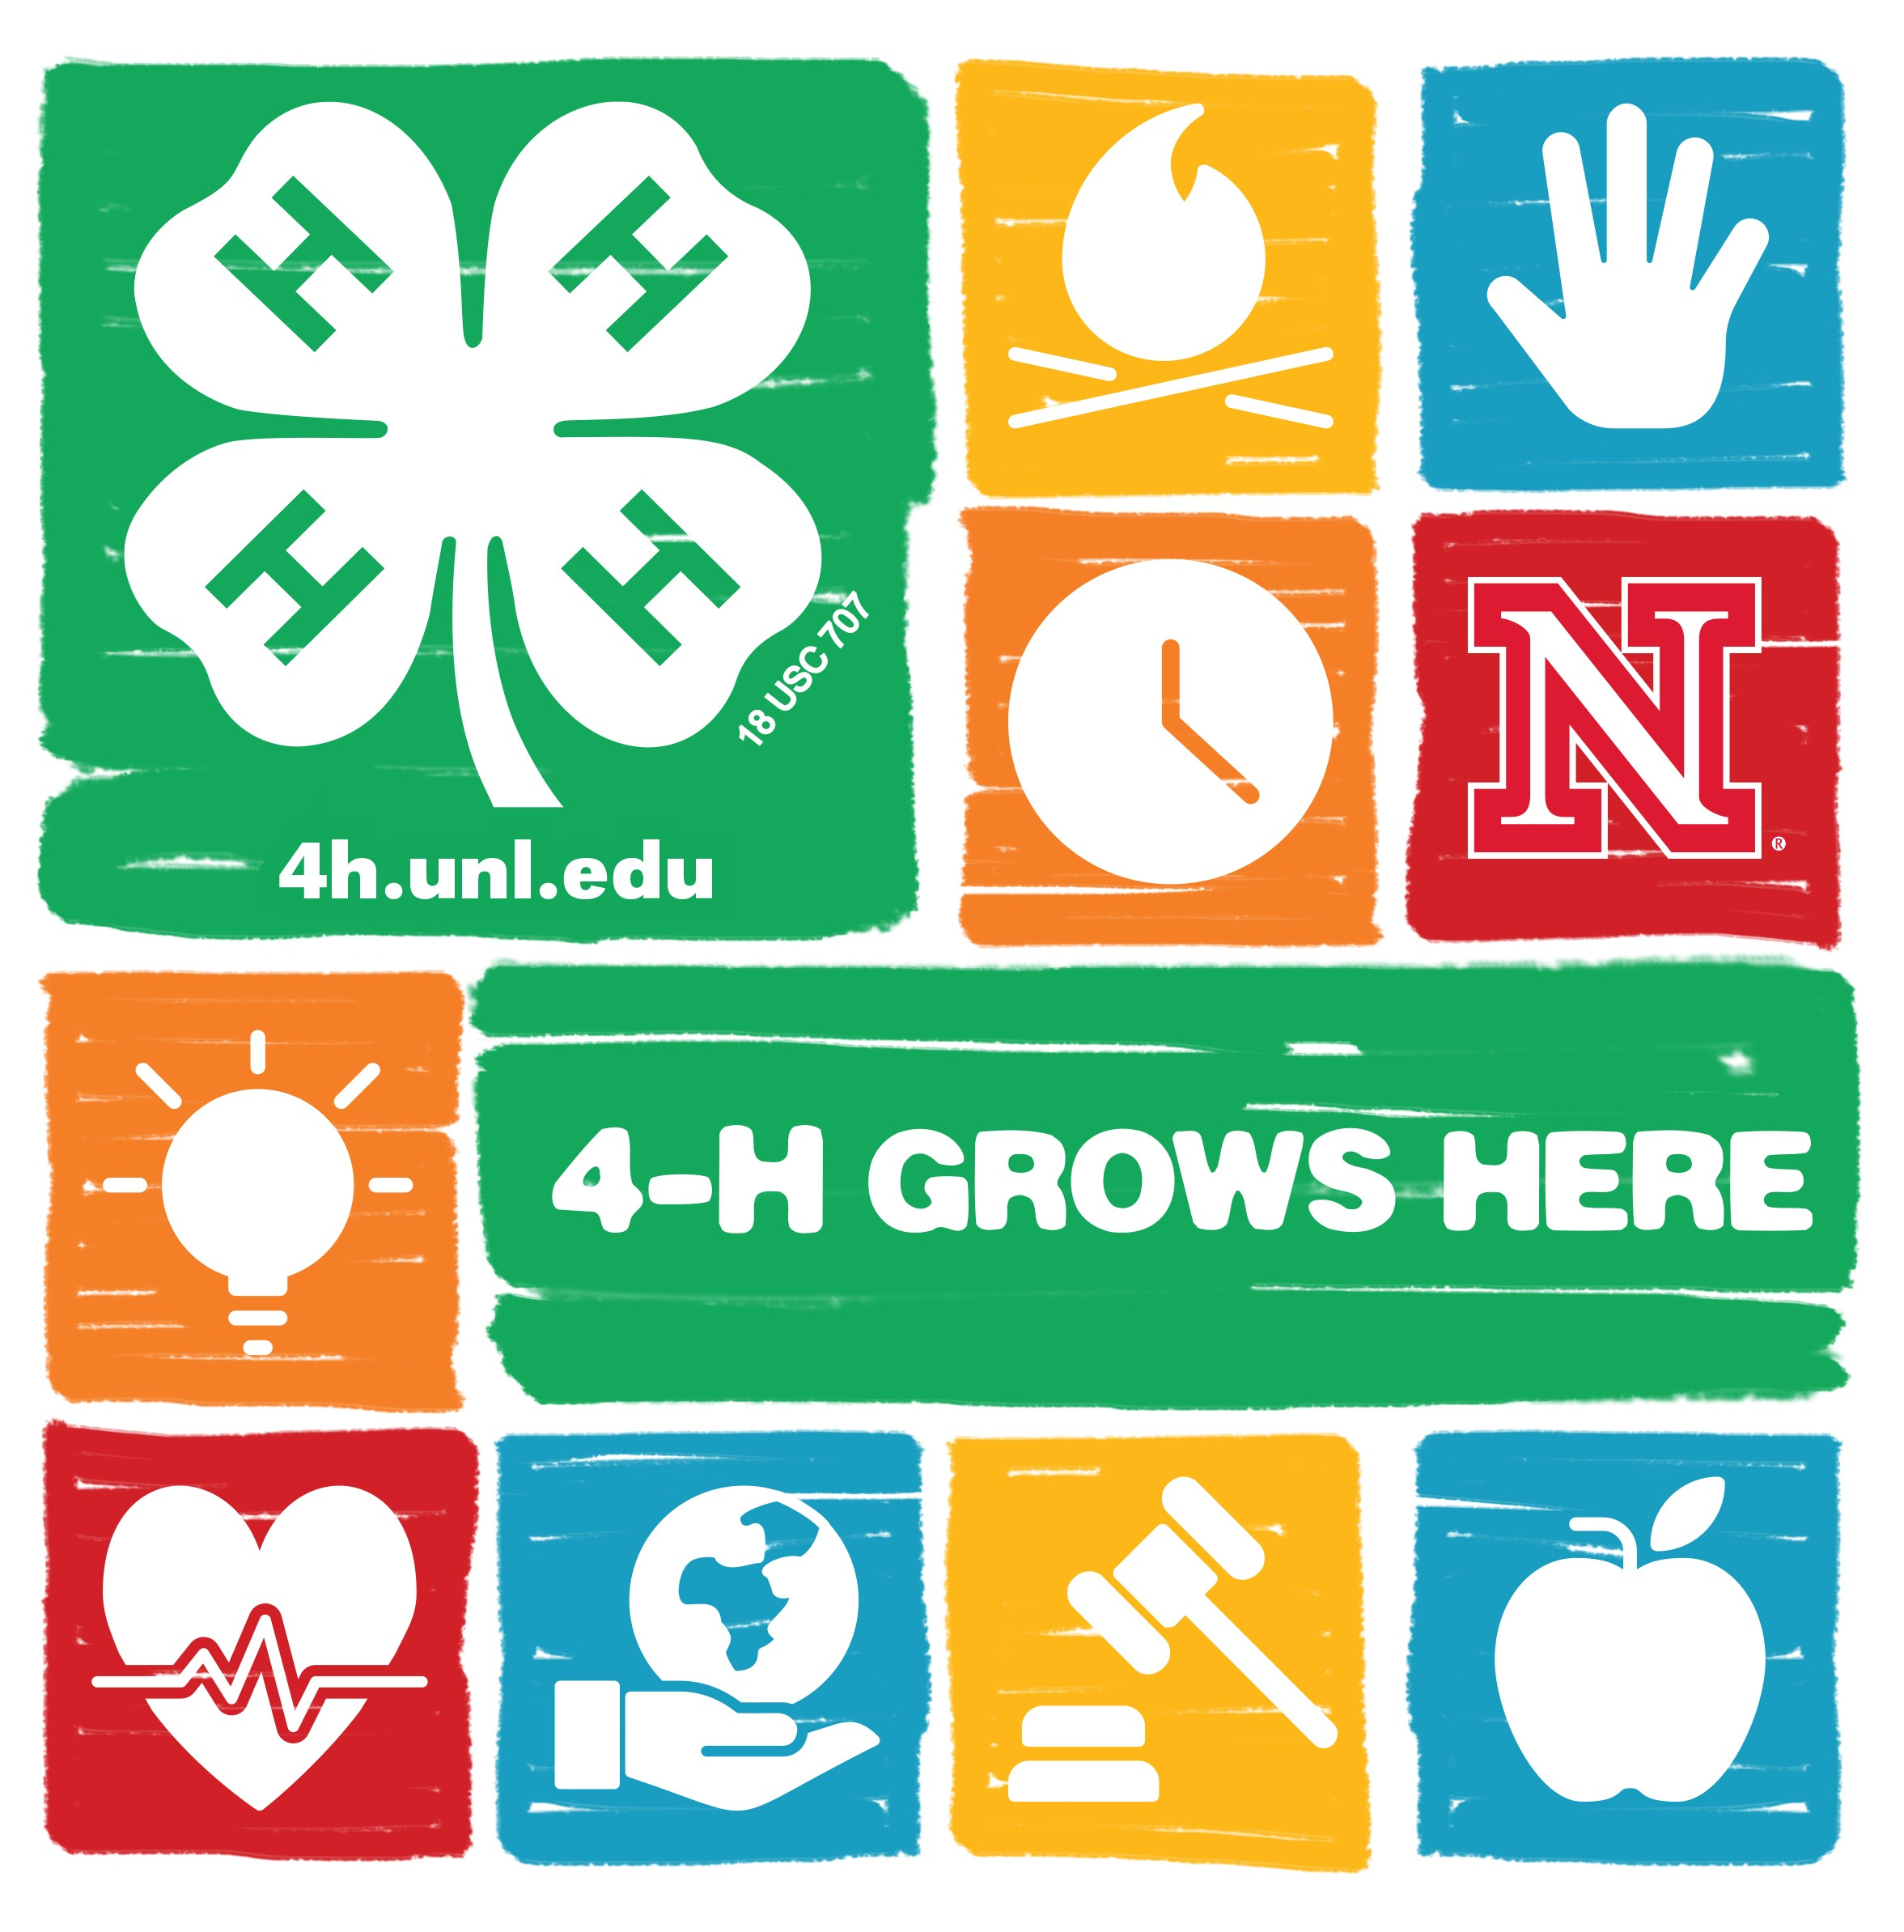 4-H Promotional Booklet